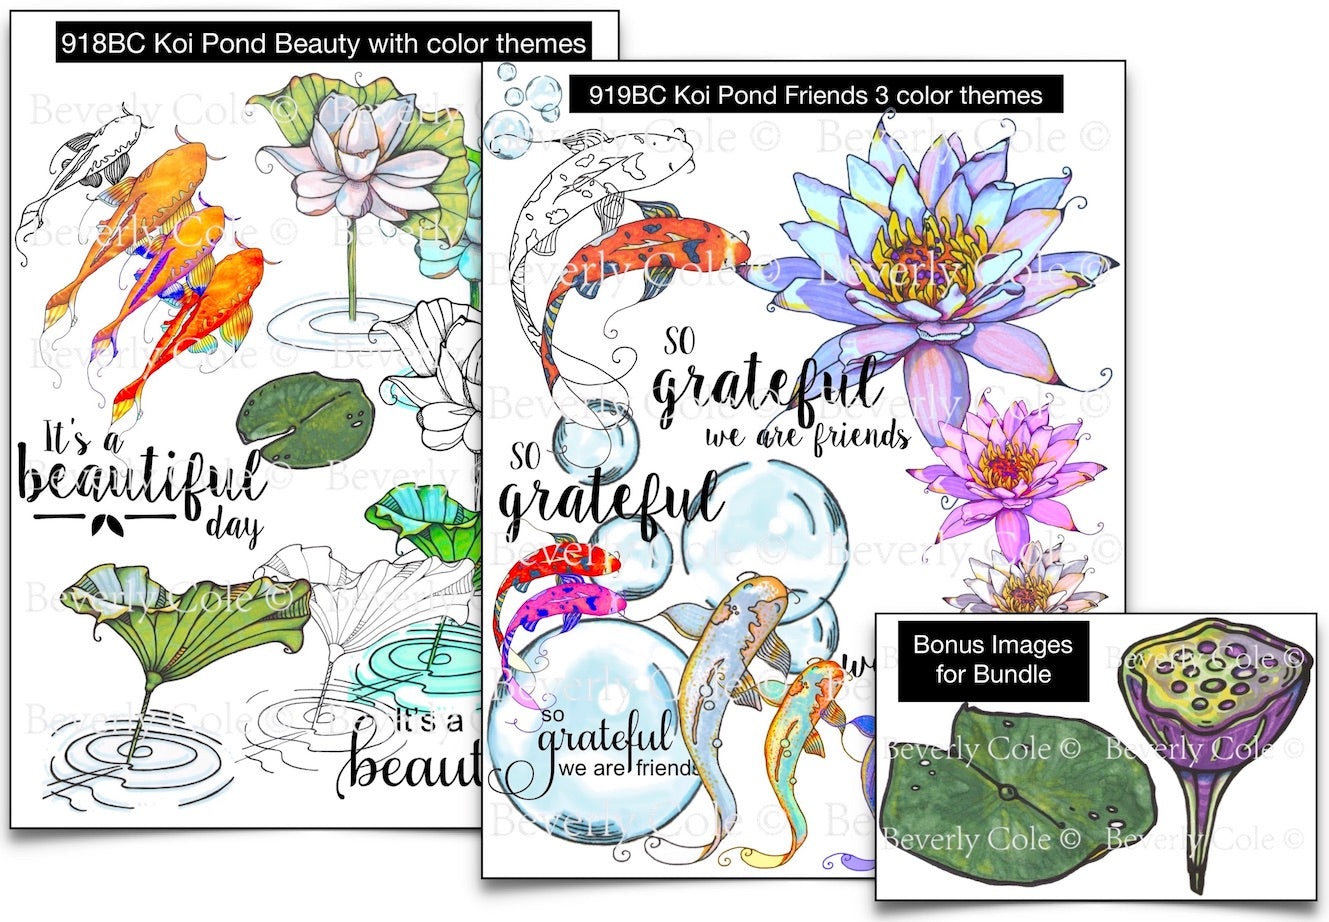 Koi Pond Super Bundle Digital Stamp Set [DIGI918-919BC]